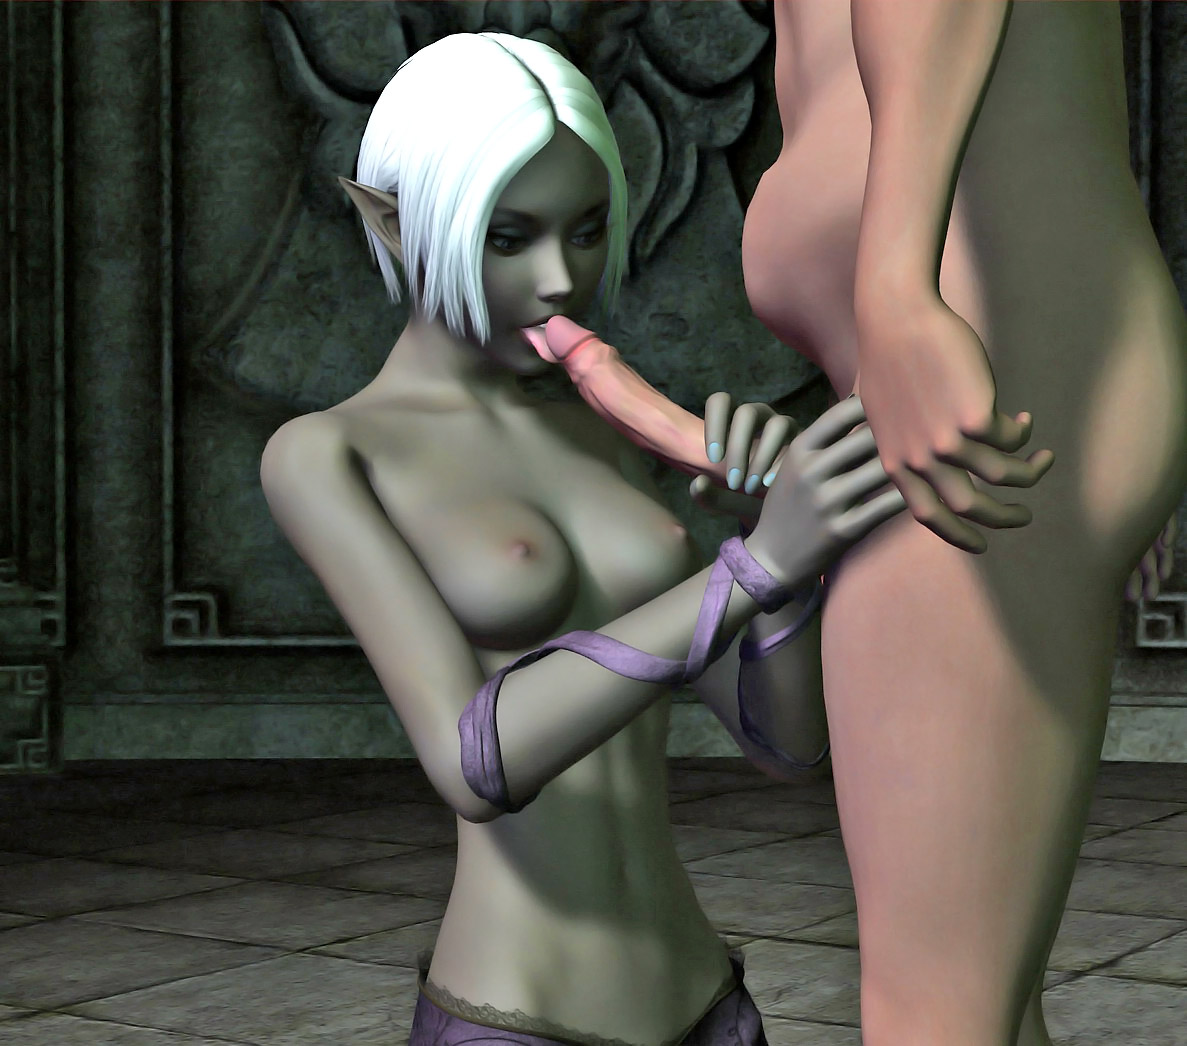 Elves naked hotcock fucked picture